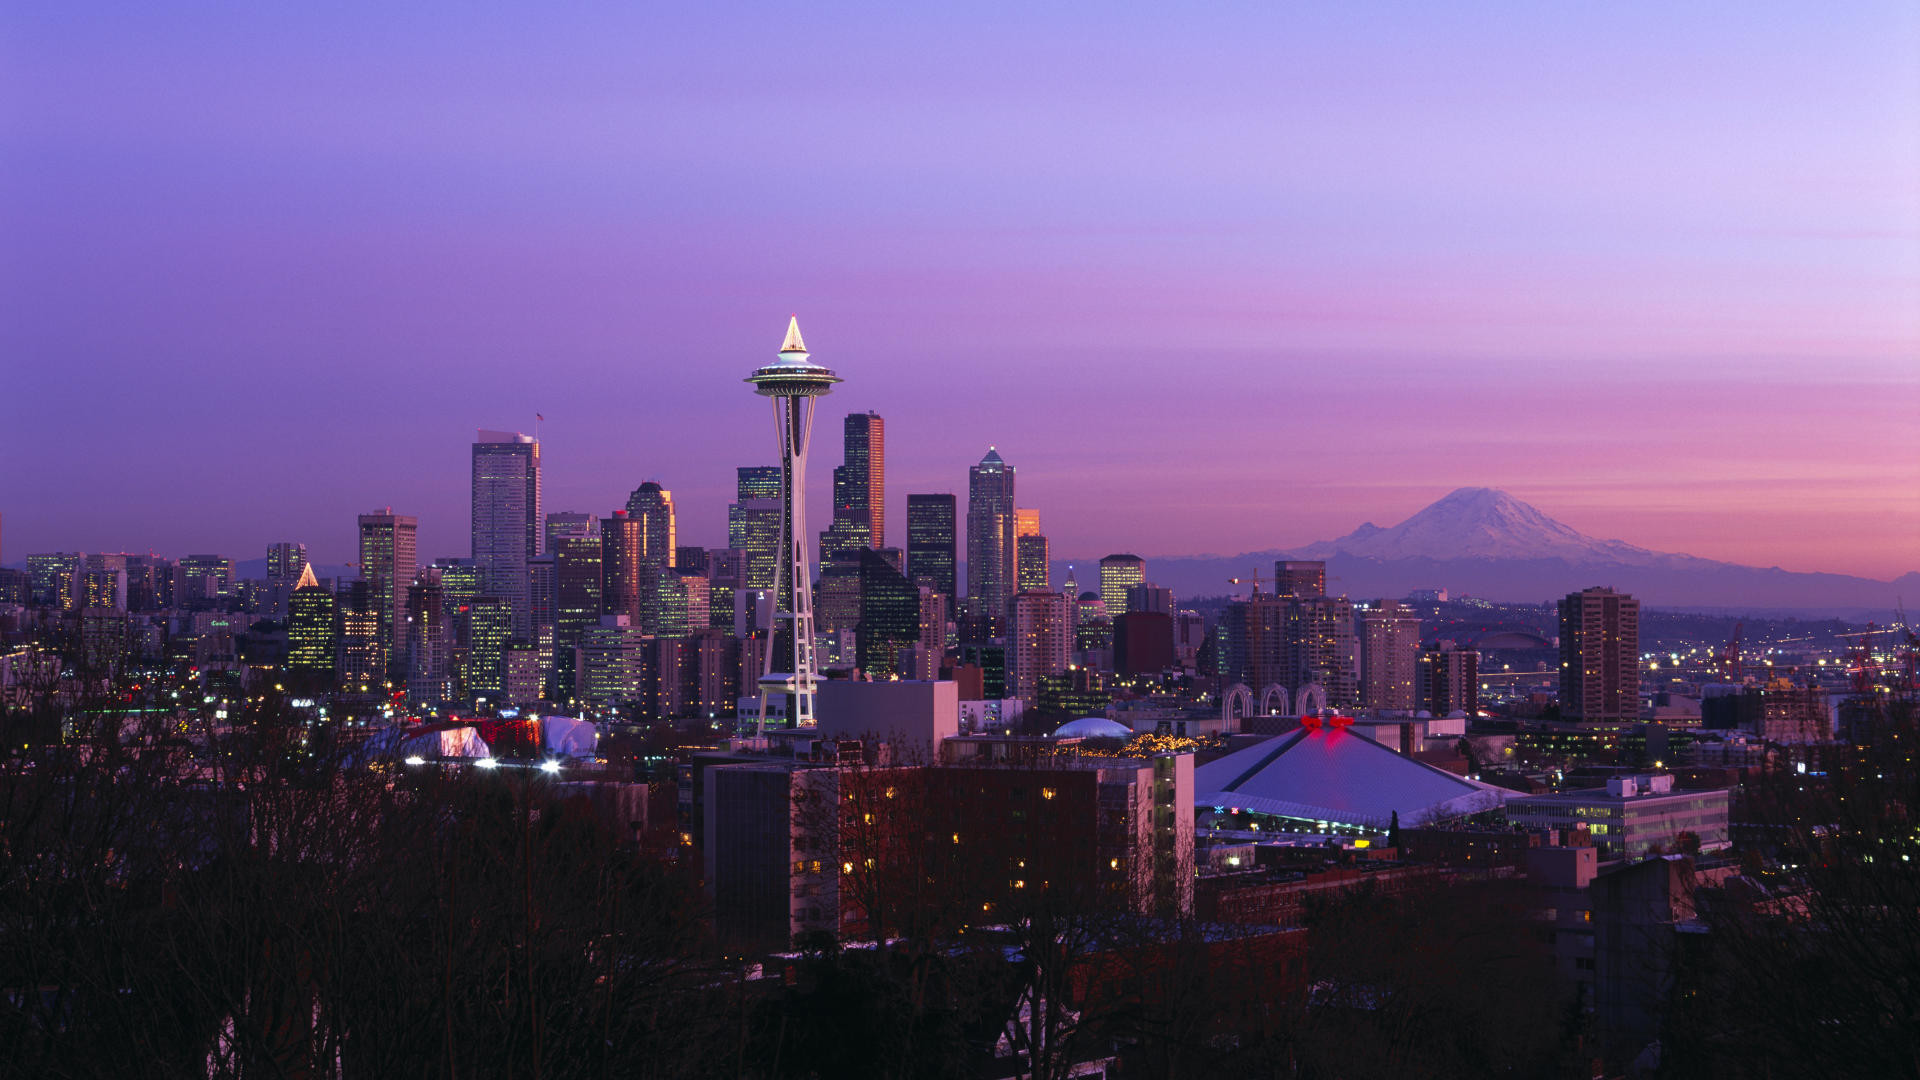 1920x1080 details wallpapers rainier mount travel downtown seattle wallpaperjpg